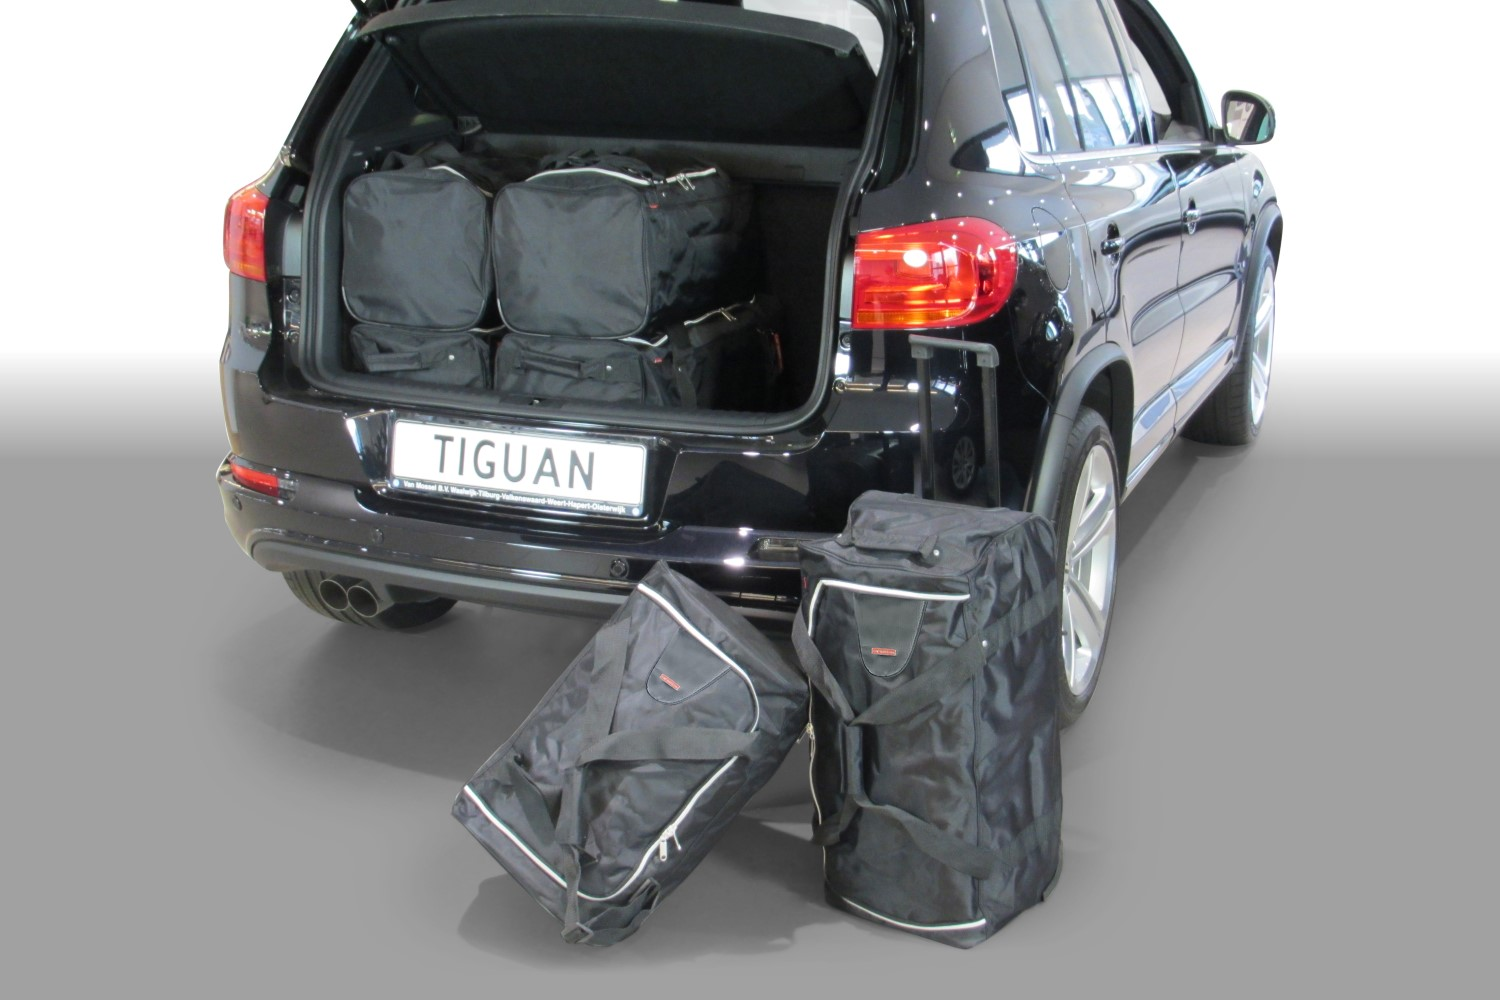 Volkswagen Tiguan (5N) low boot floor 2007-2015 Car-Bags.com travel bag set (1)